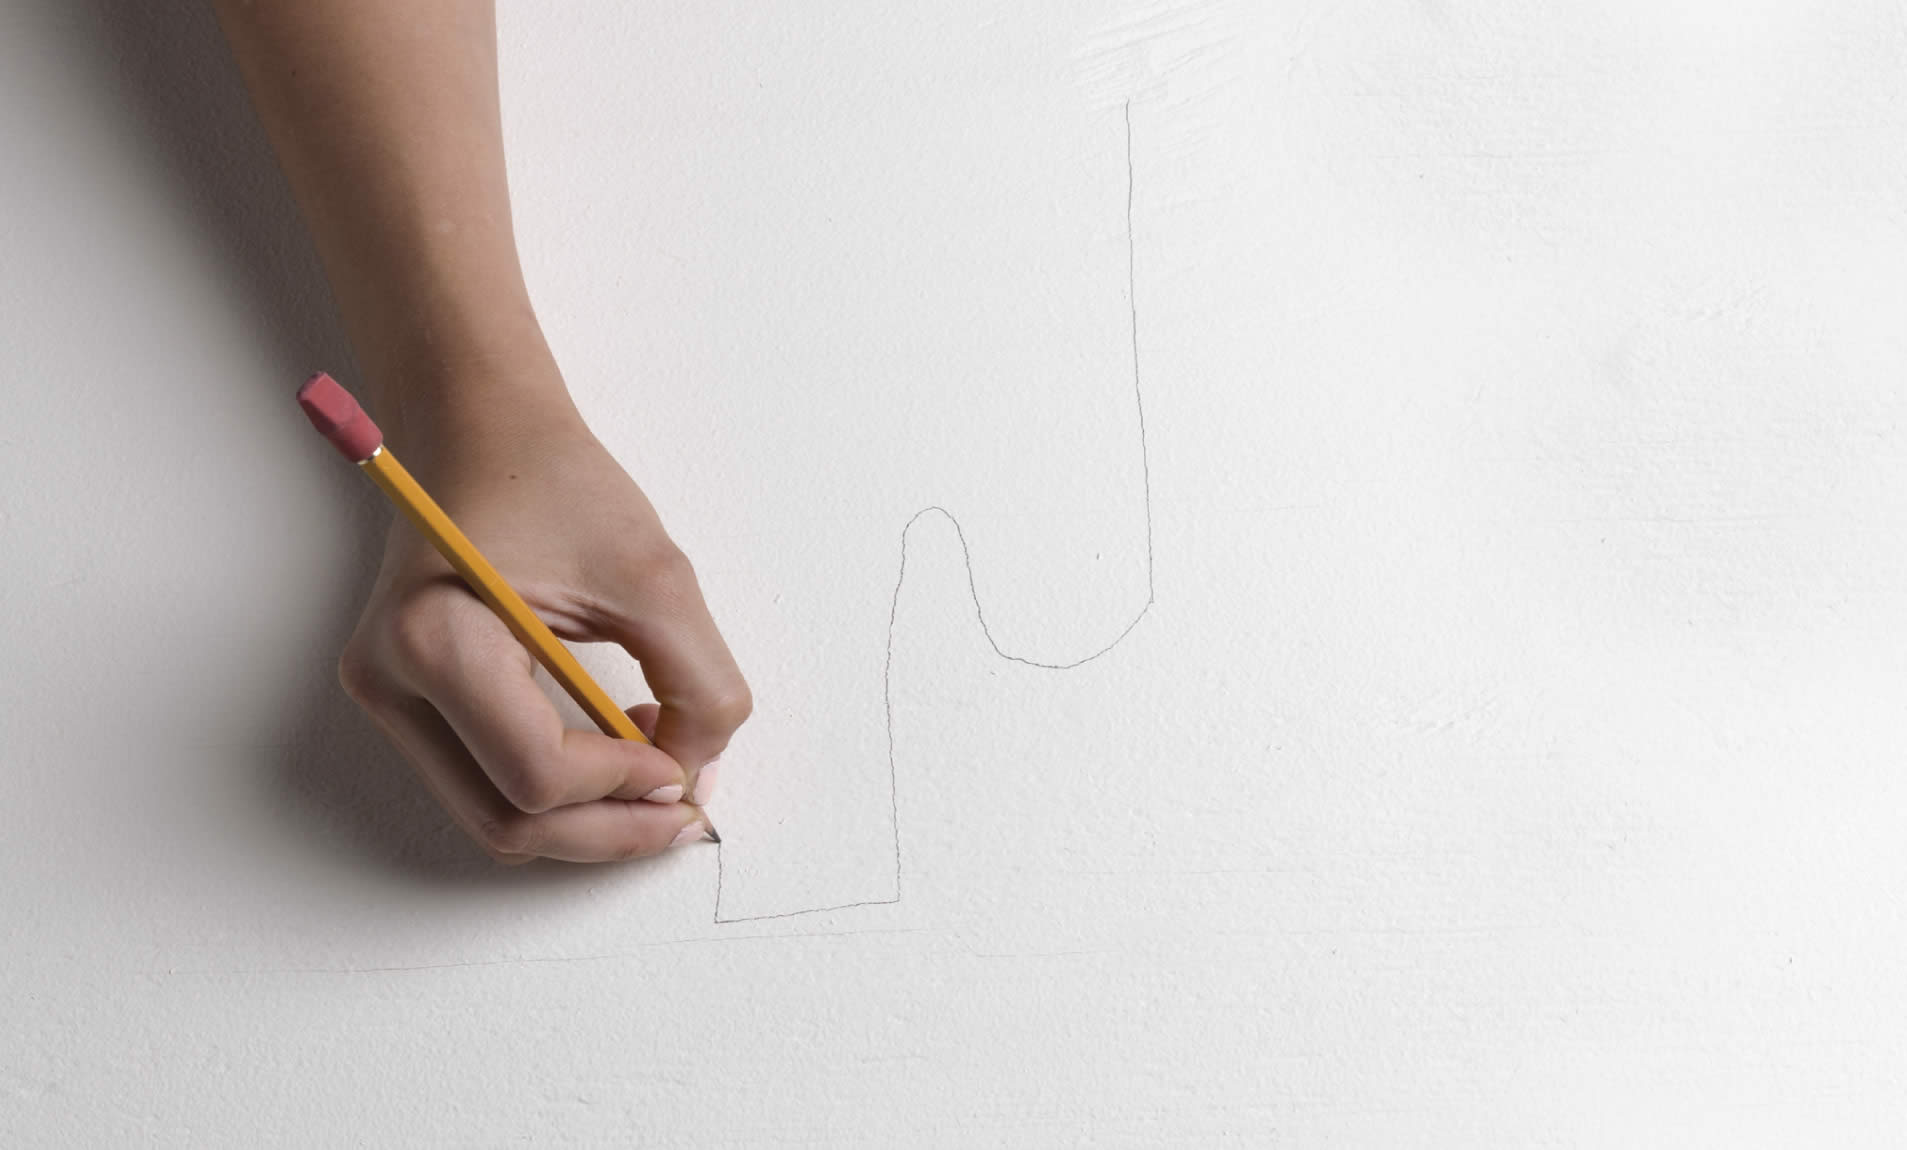 cable-mural-arrow-project-step6c.jpg